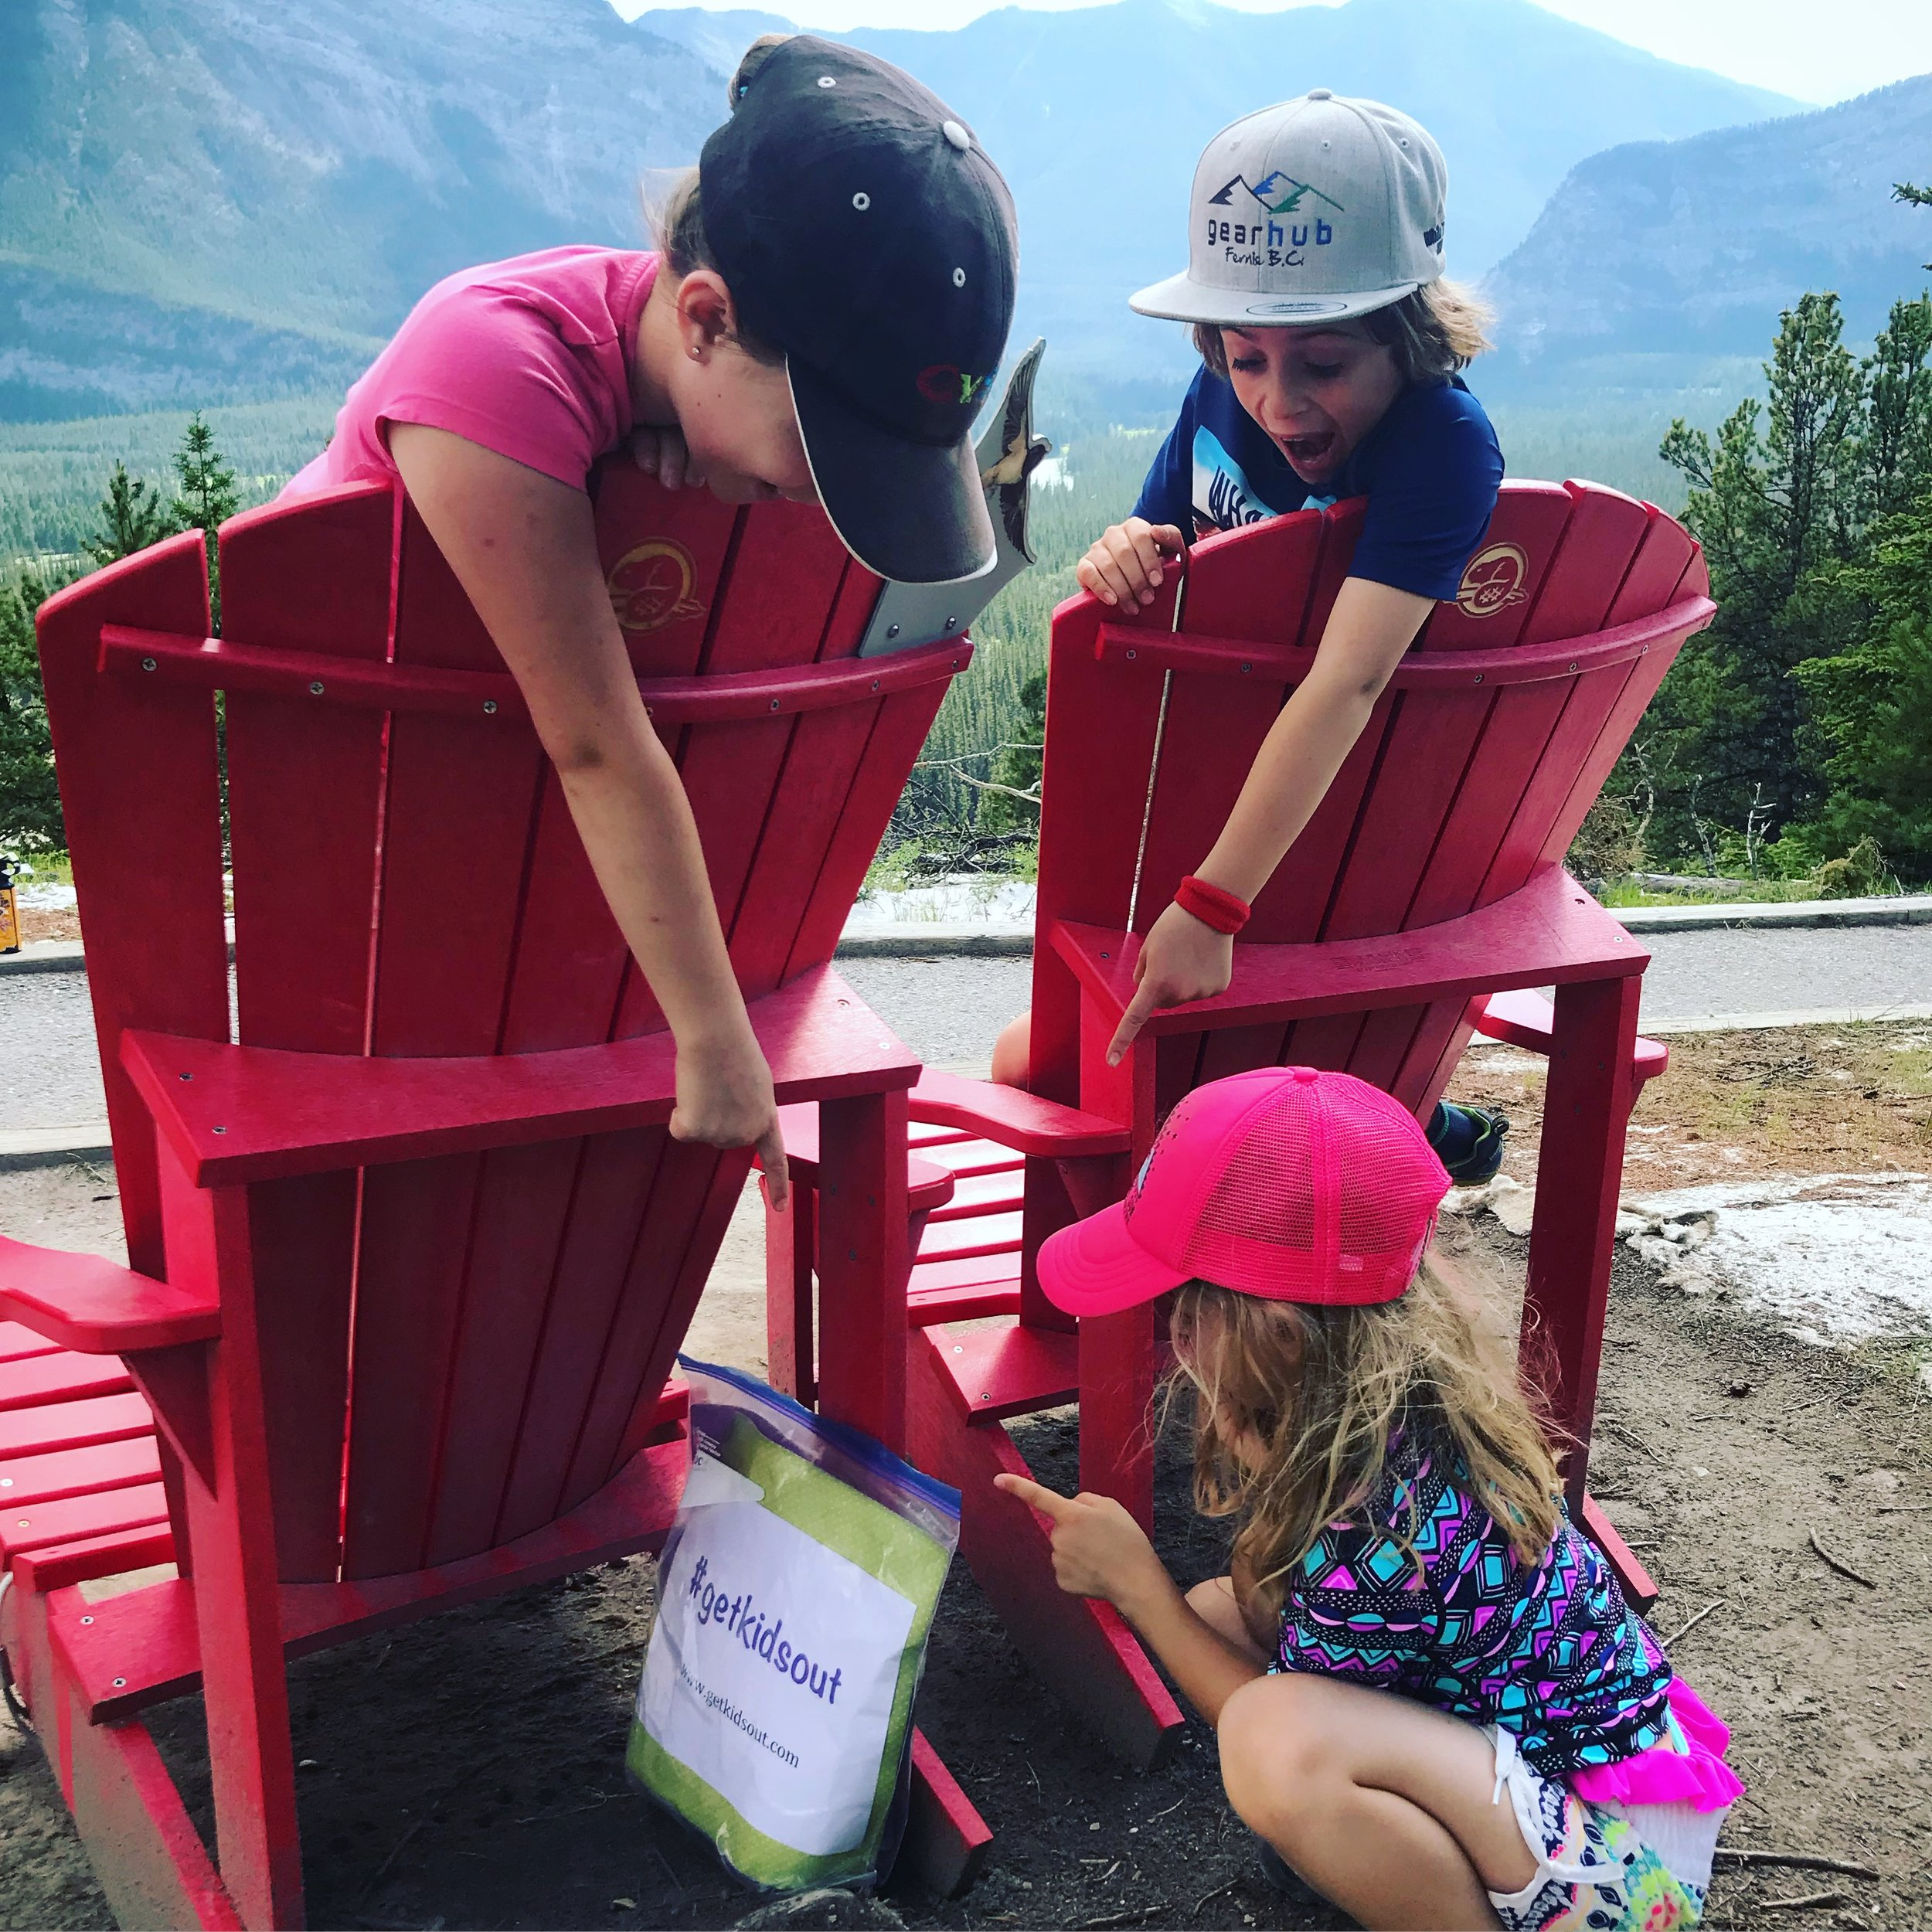 The Treasure Bag launch in Banff National Park. Dropped at the famous red chairs.